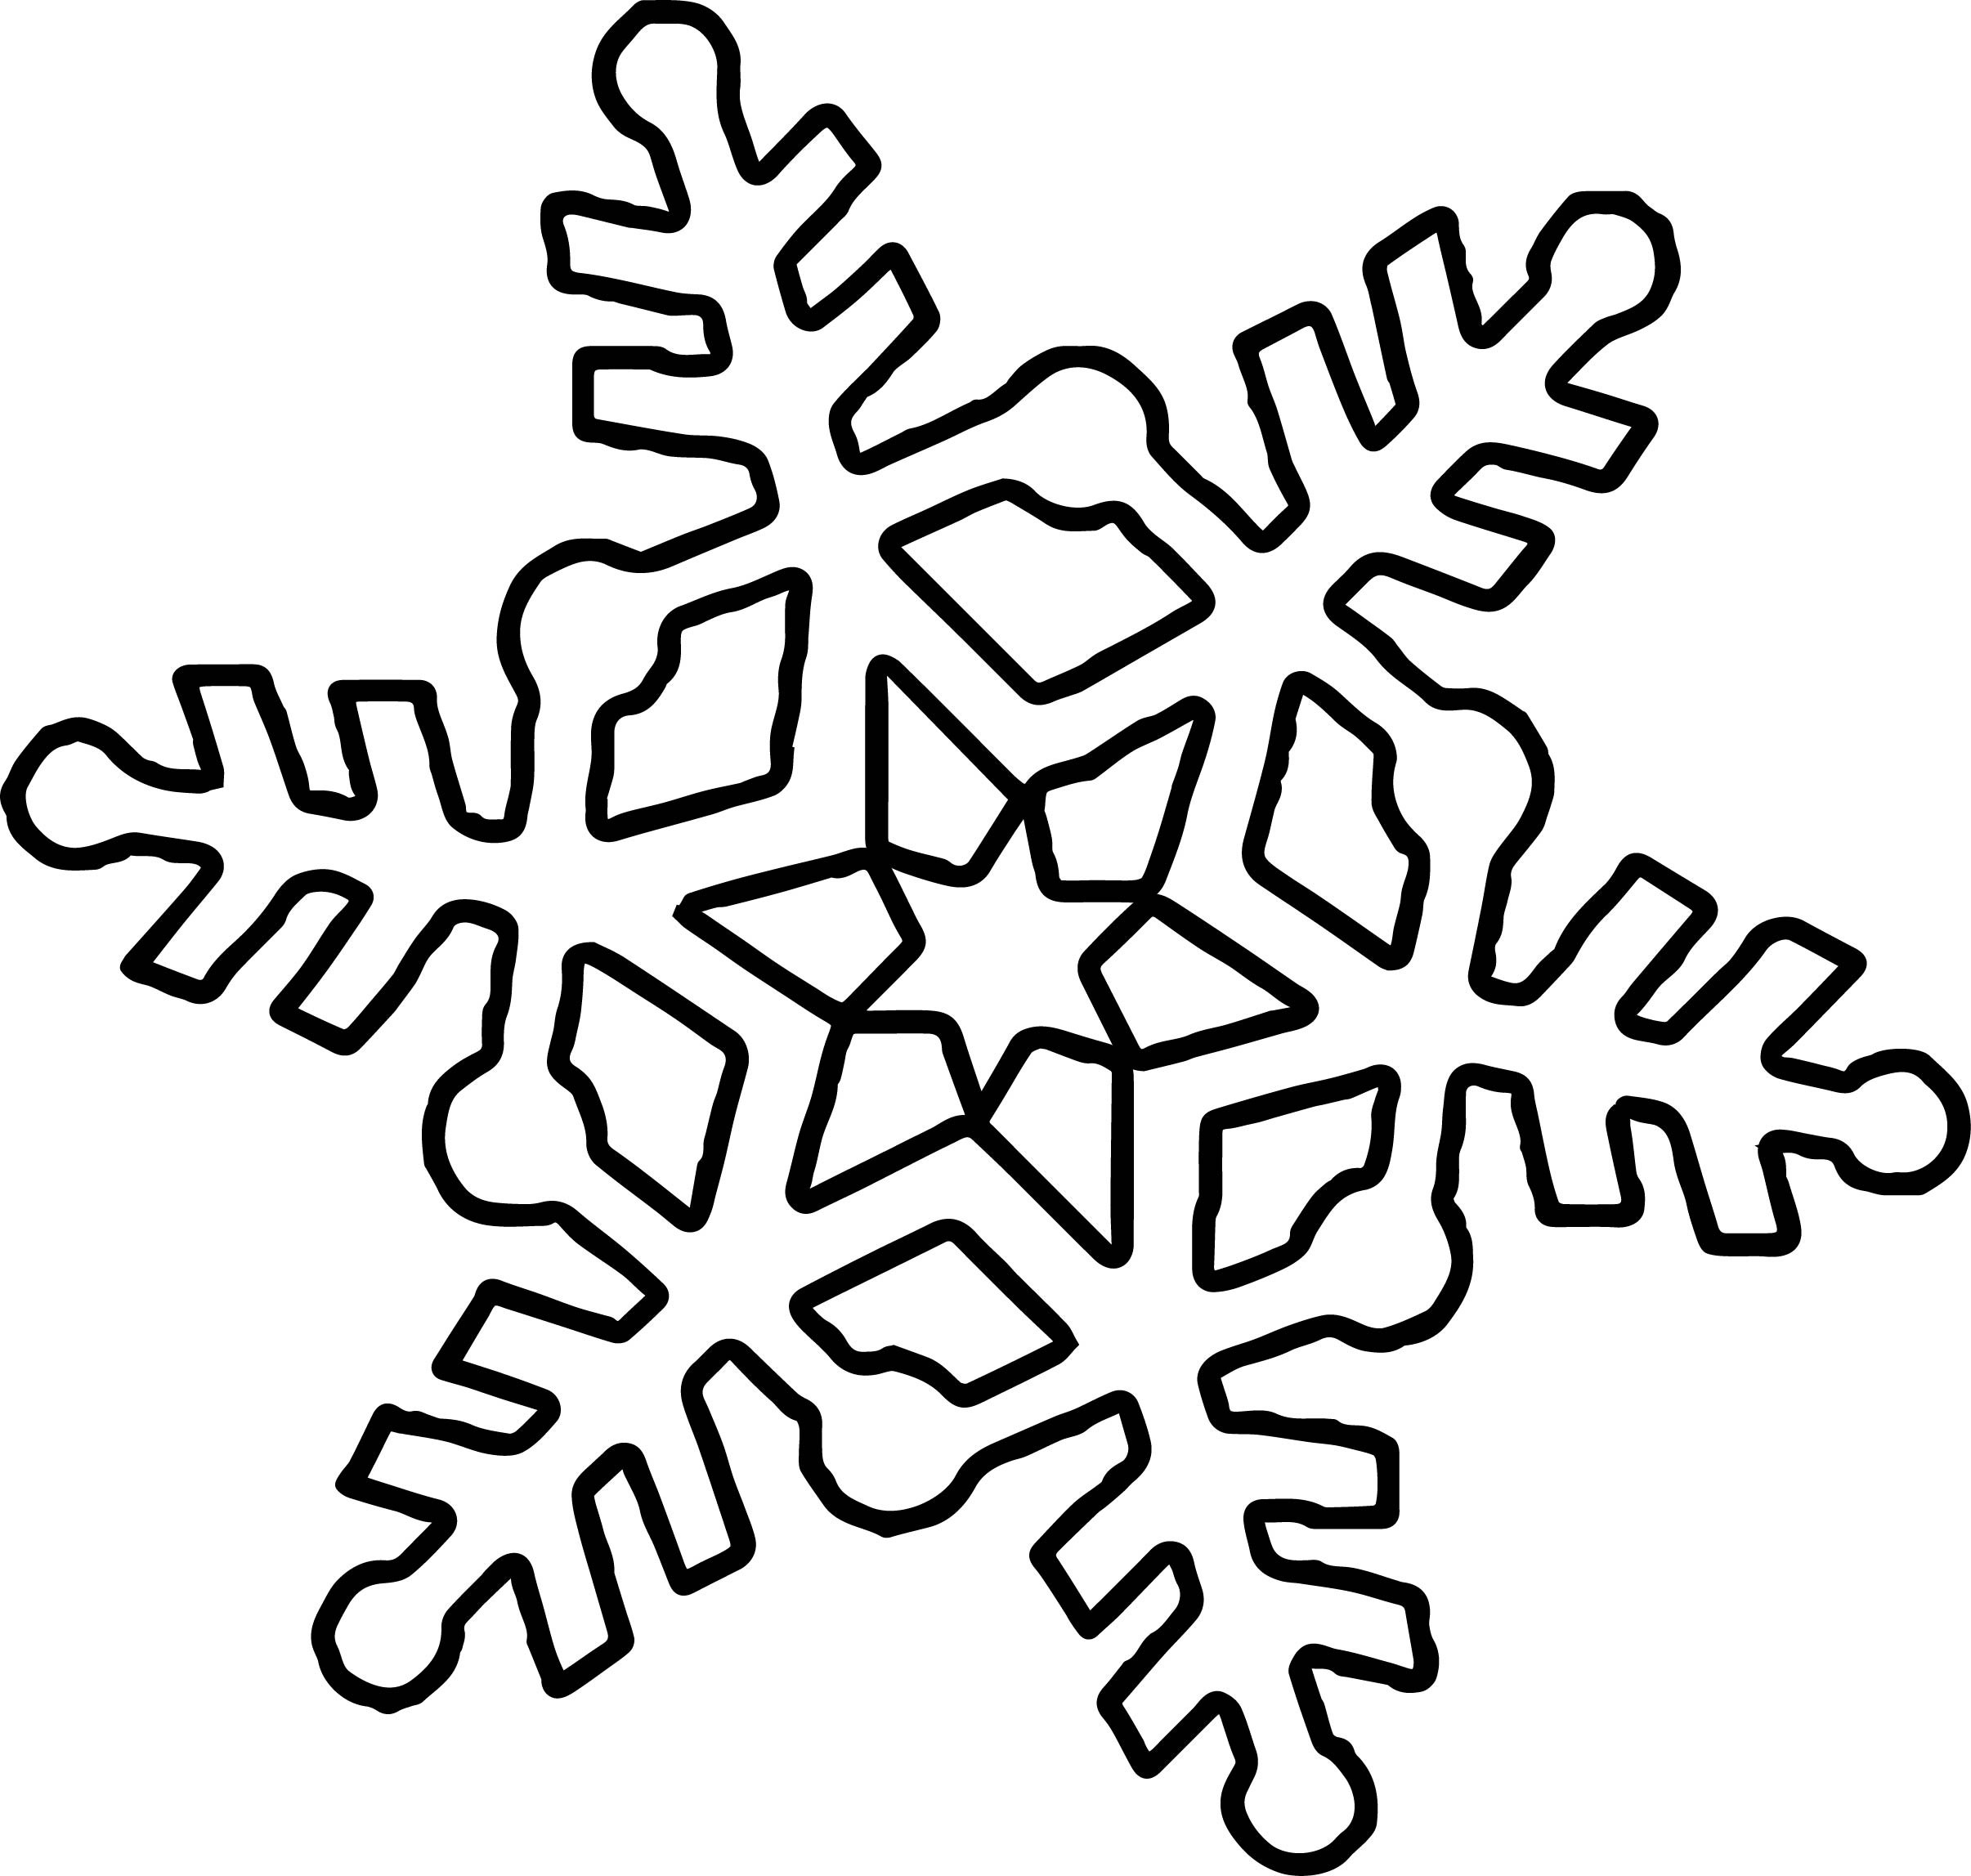 snowflake pictures to color top 25 winter snowflake coloring pages easy free and pictures to color snowflake